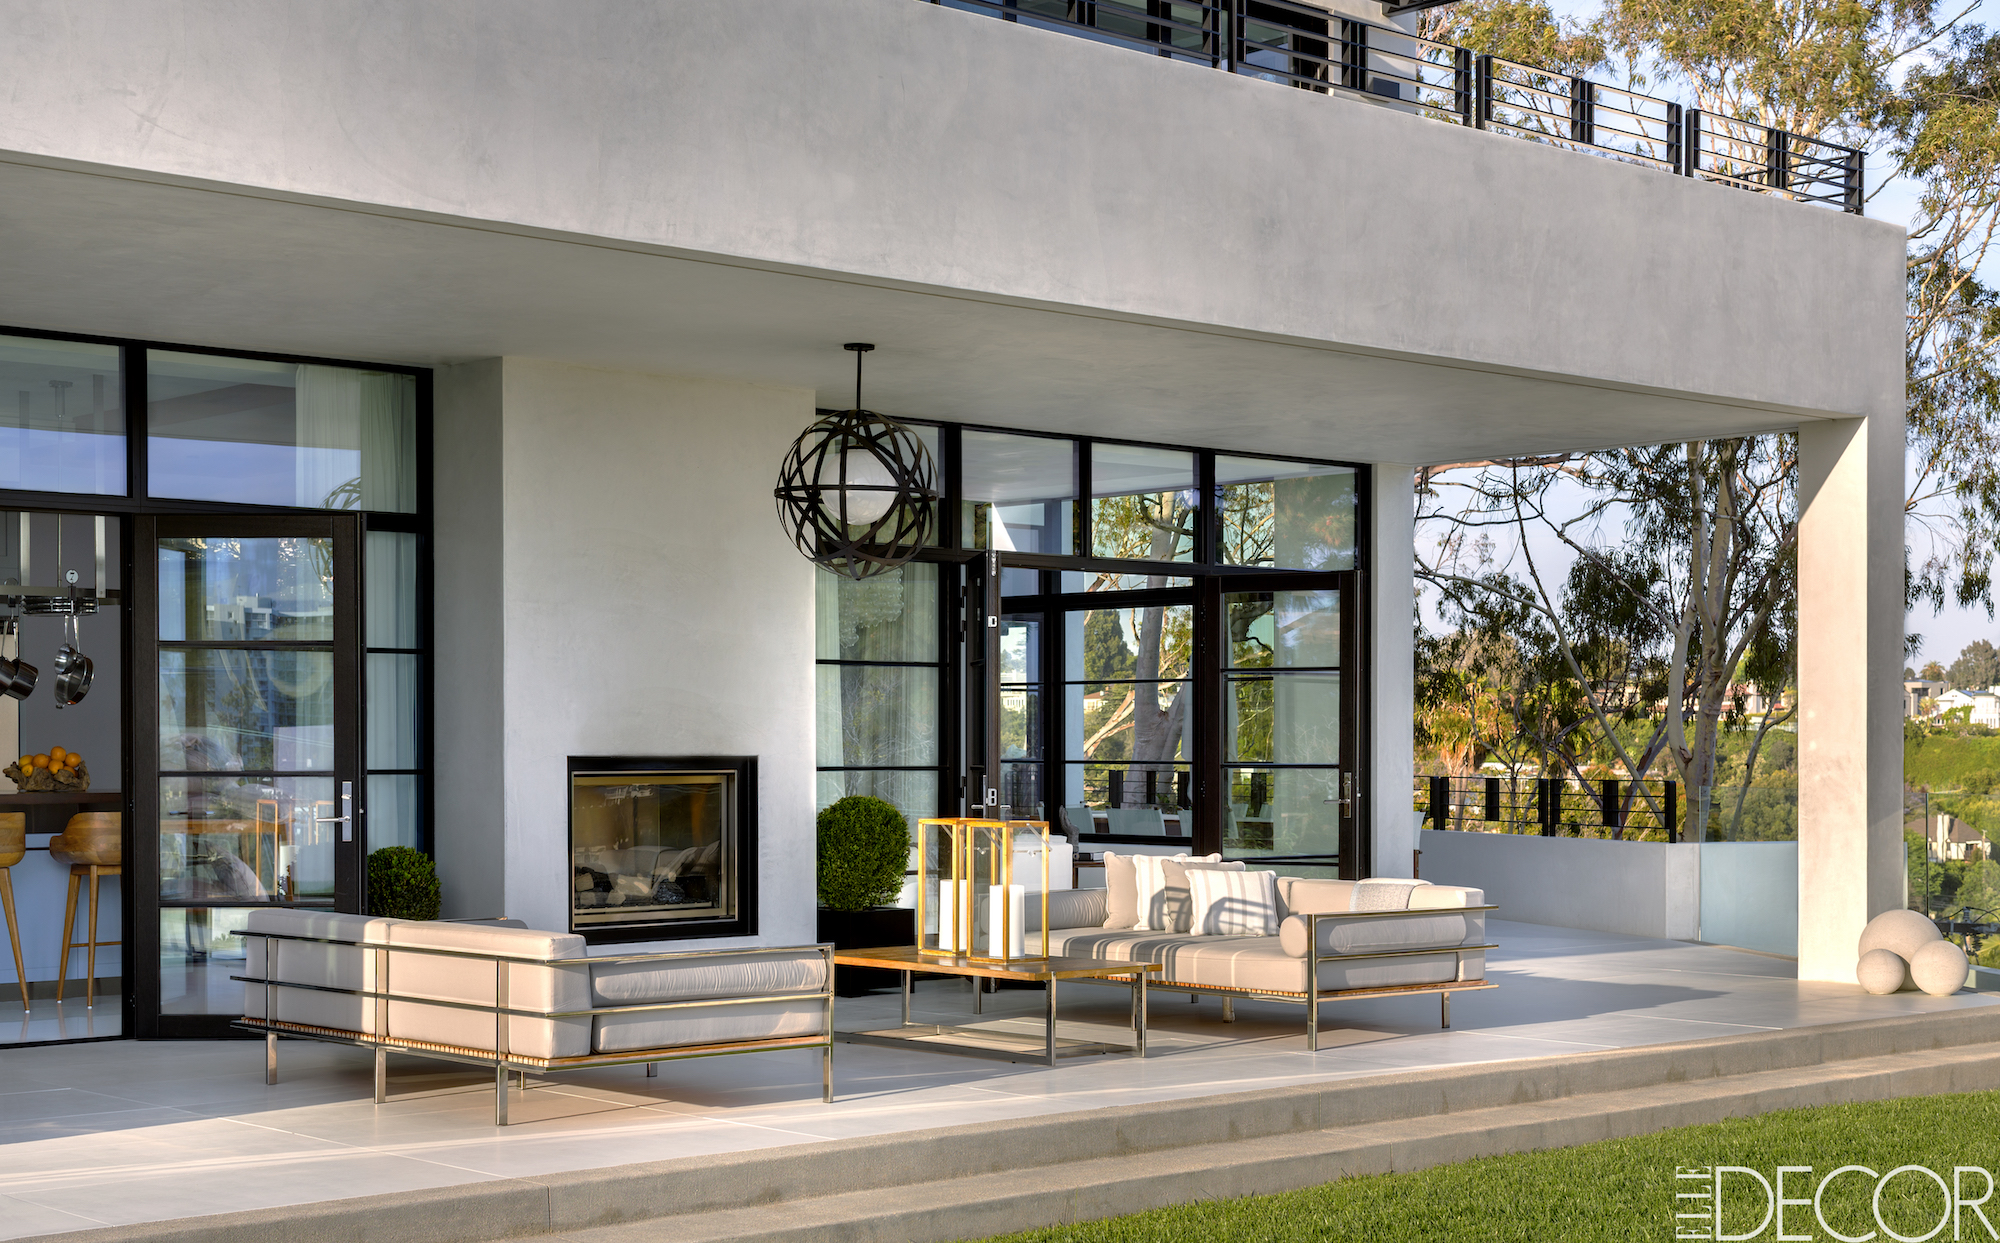 Final Selects of Palevsky Residence designed by AP Design Inc for Elle Decor feature to be published in May 2016 issue.  Styling on set done by Robert Rufino. Patio Design Ideas 7 Stunning Patio Design Ideas For This Summer 5 Outdoor Fireplaces You Will Want to Use in Your Backyard 4 Patio Design Ideas 7 Stunning Patio Design Ideas For This Summer 5 Outdoor Fireplaces You Will Want to Use in Your Backyard 4